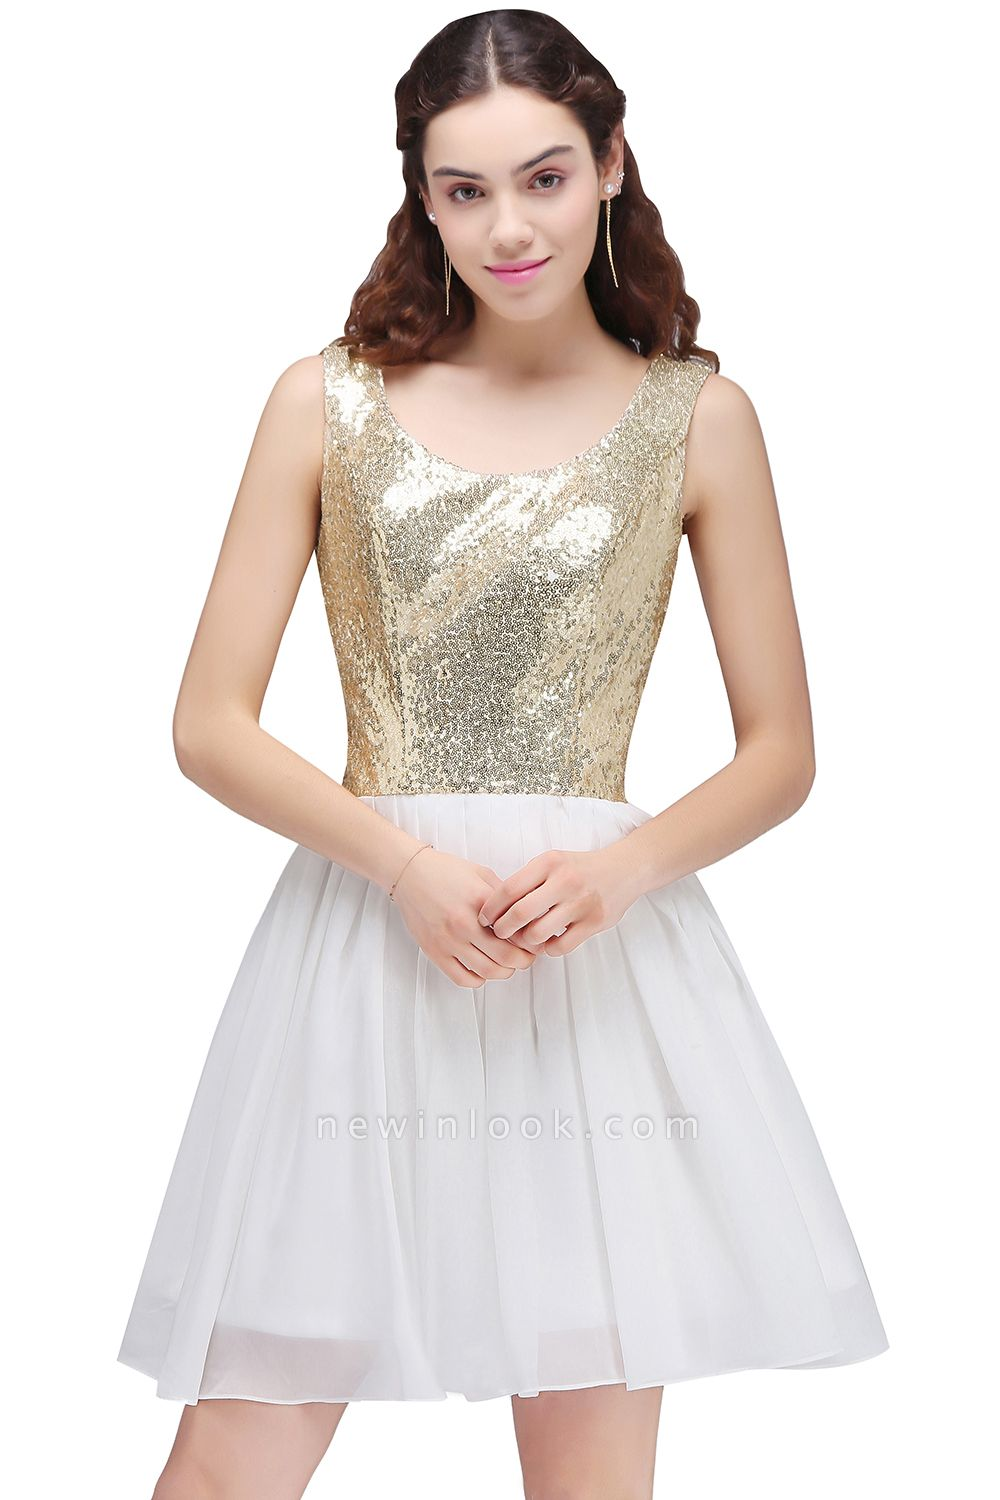 CAROLYN | Quinceanera Scoop Short Sequins White Cute Dama Dresses with Sequins